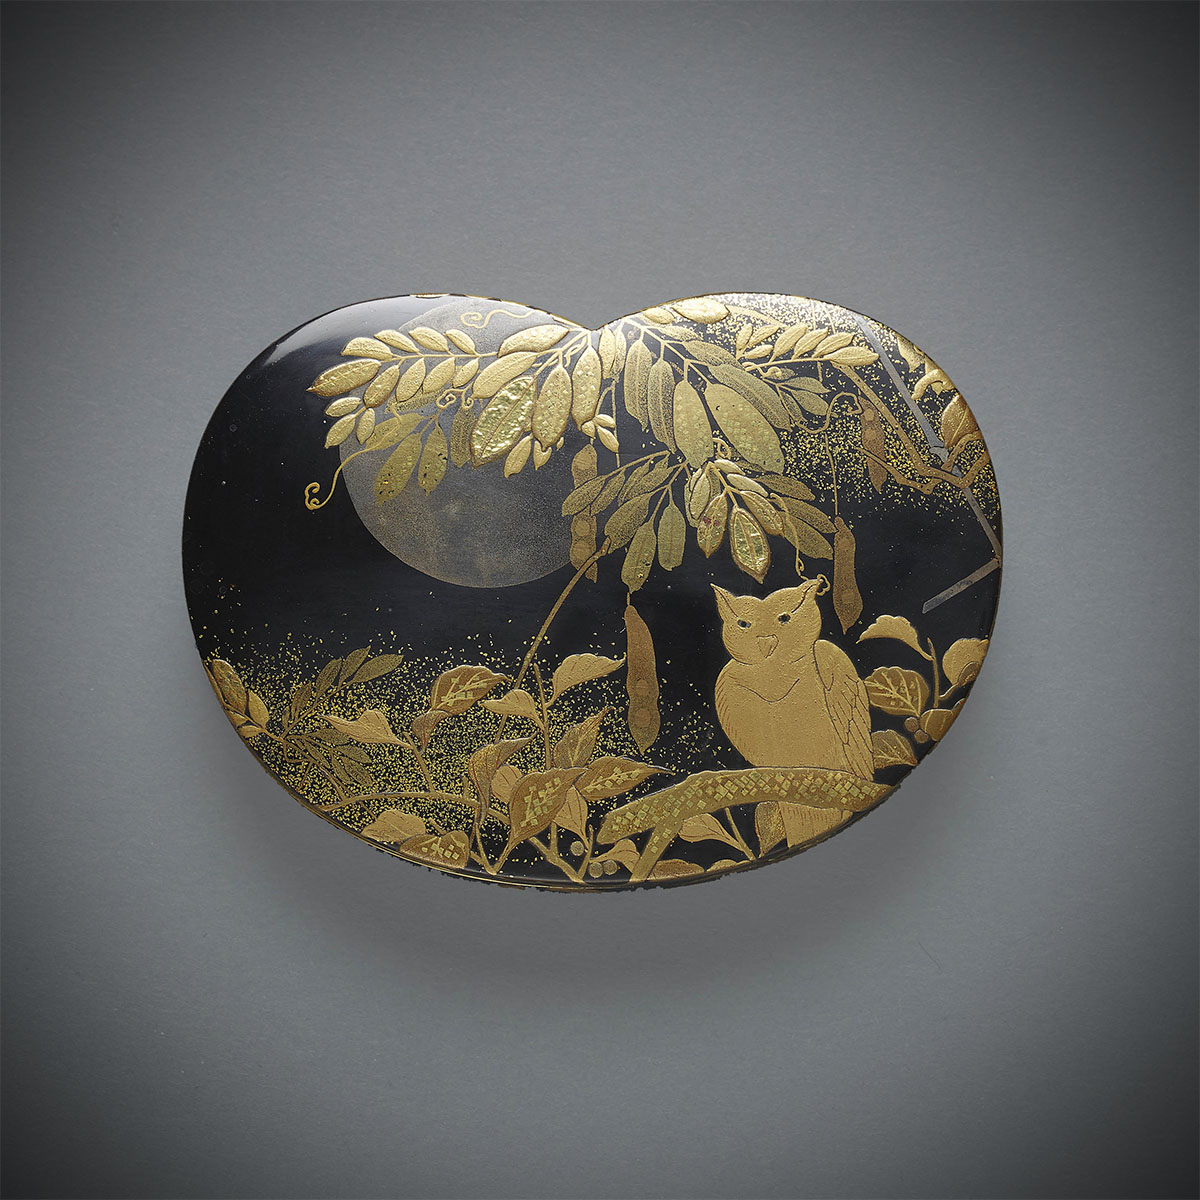 Lacquer Box with Owl, MR3336_v1